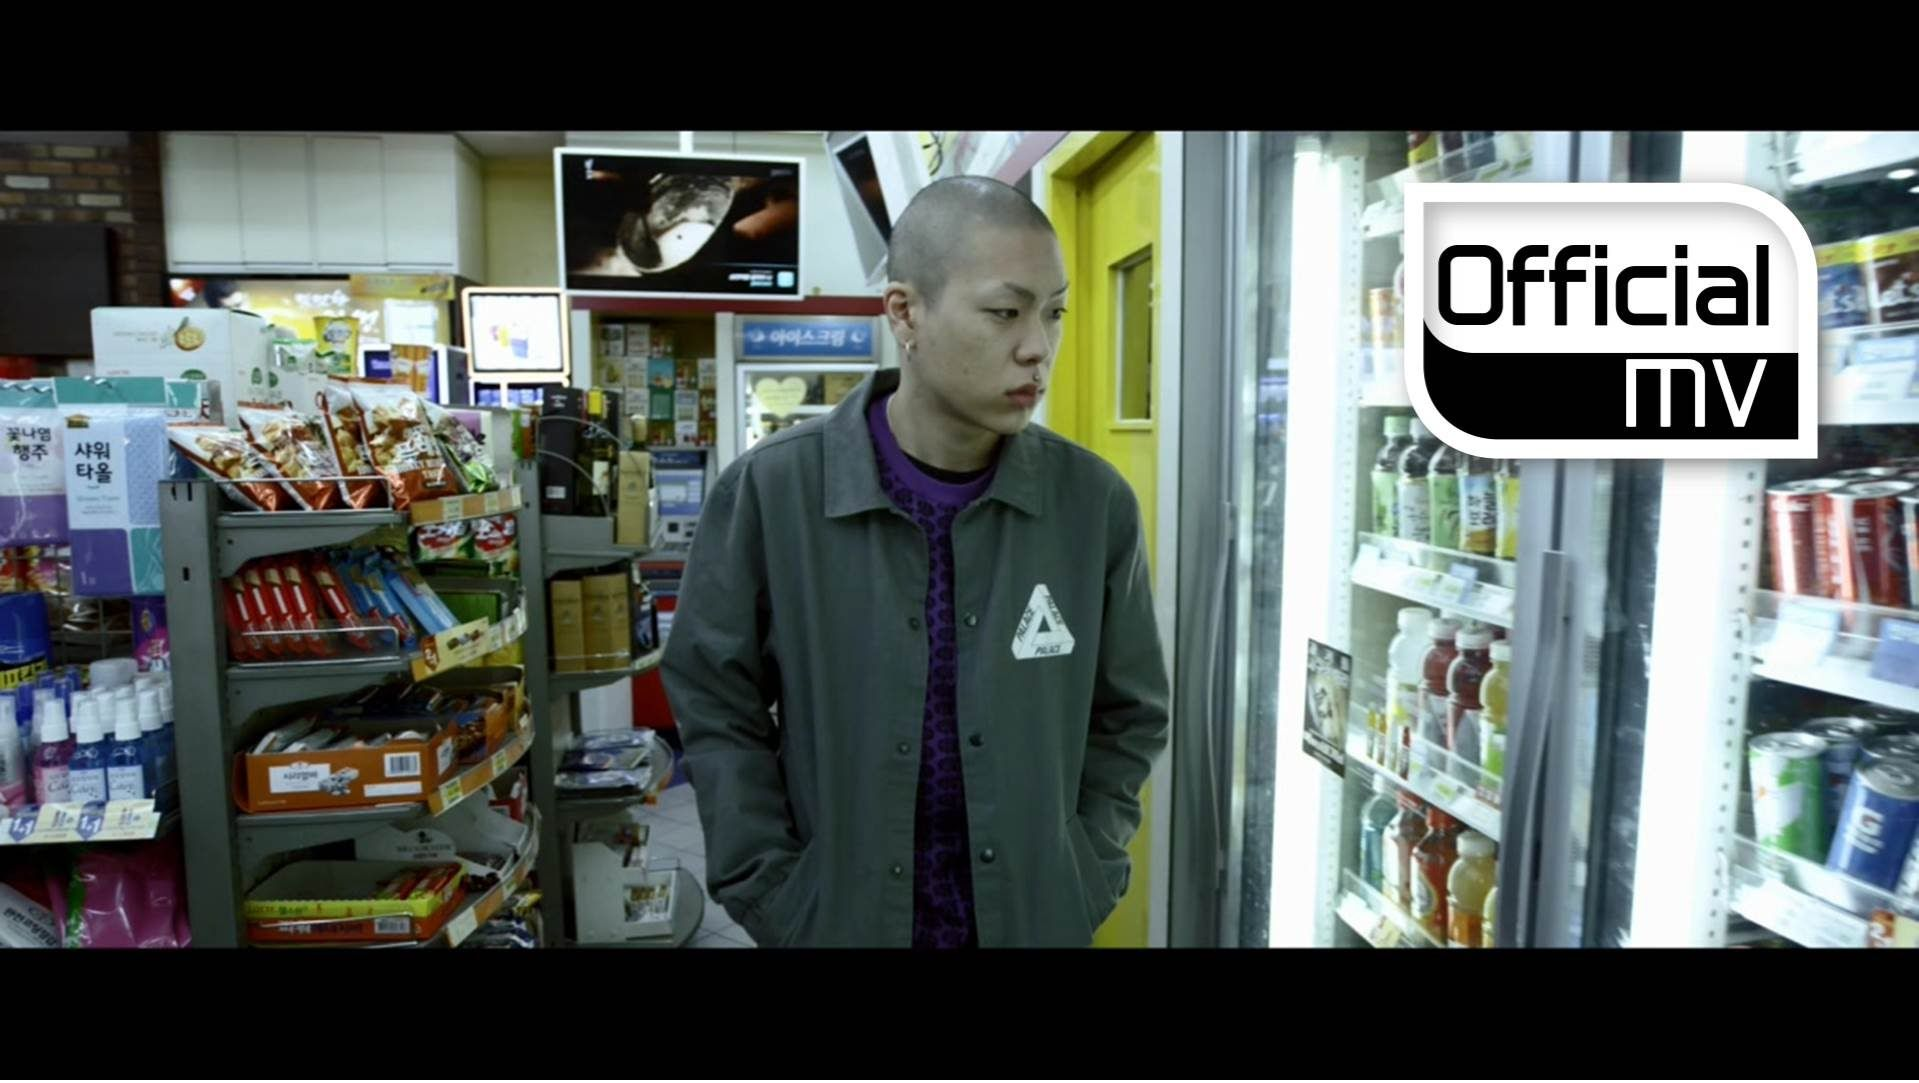 [MV] PRIMARY(프라이머리), OHHYUK(오혁) _ Bawling *English subtitles are now available. :D (Please click on 'CC' button or activate 'Interactive Transcript' function...